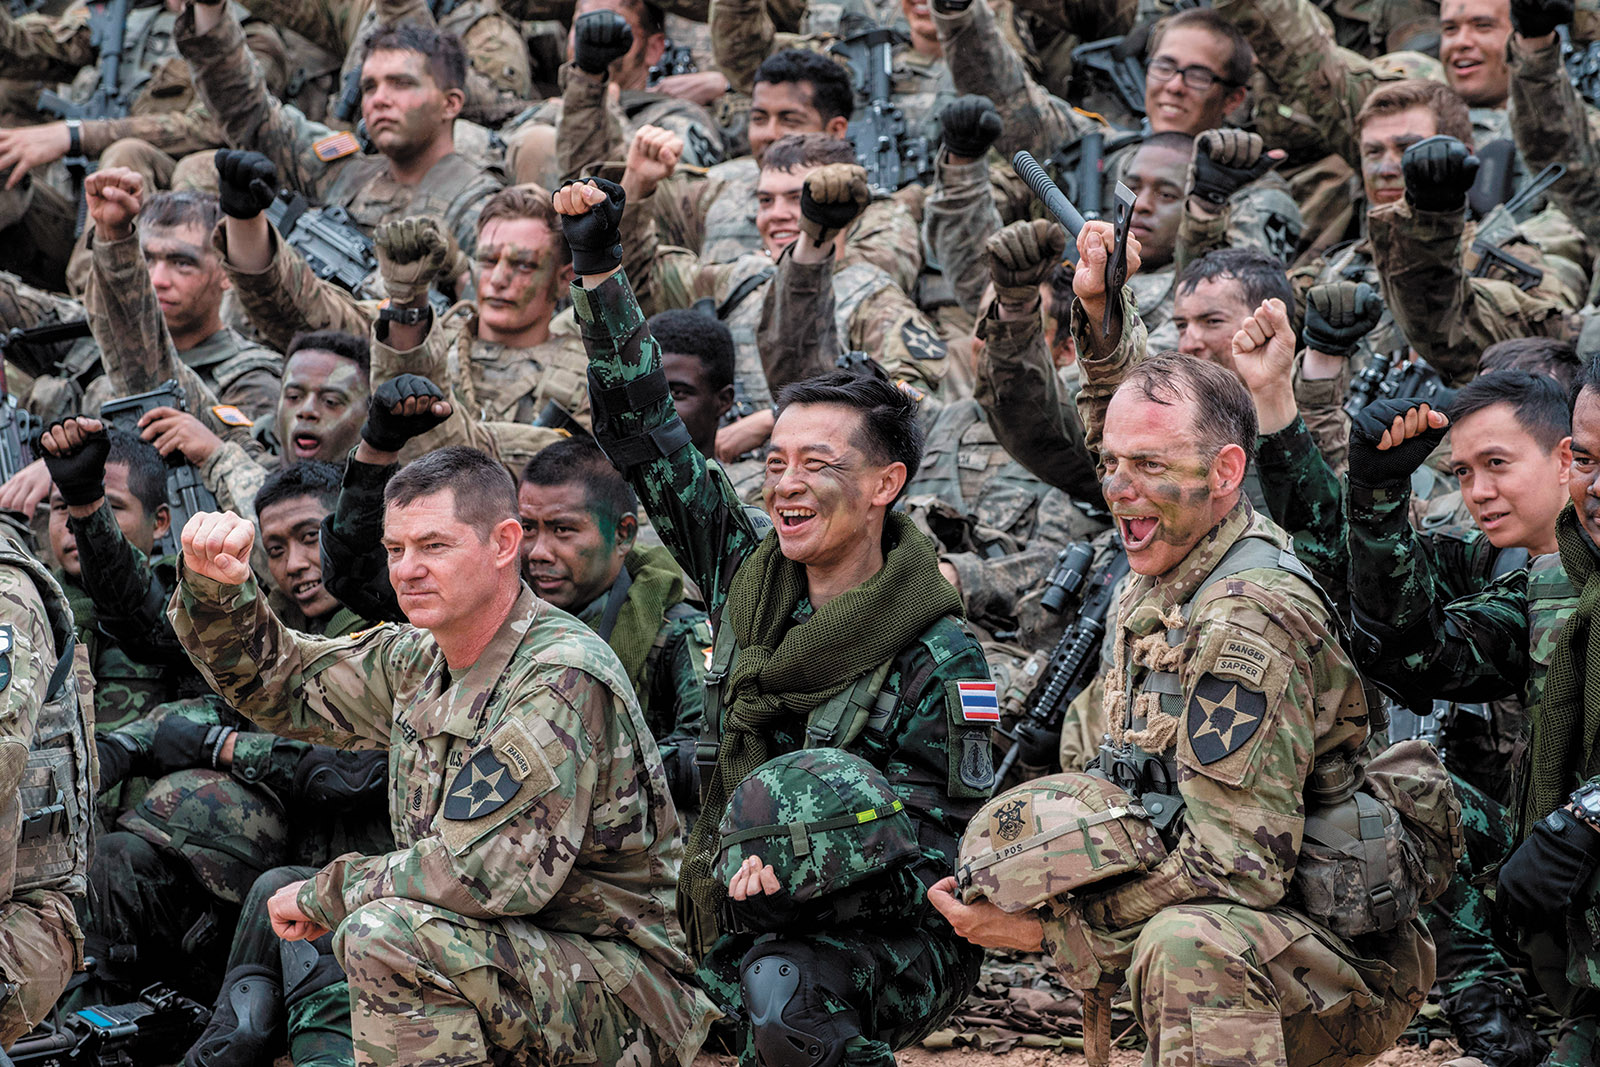 Thai and US soldiers at the end of a live-fire military display, Nakhon Ratchasima, Thailand, February 2017